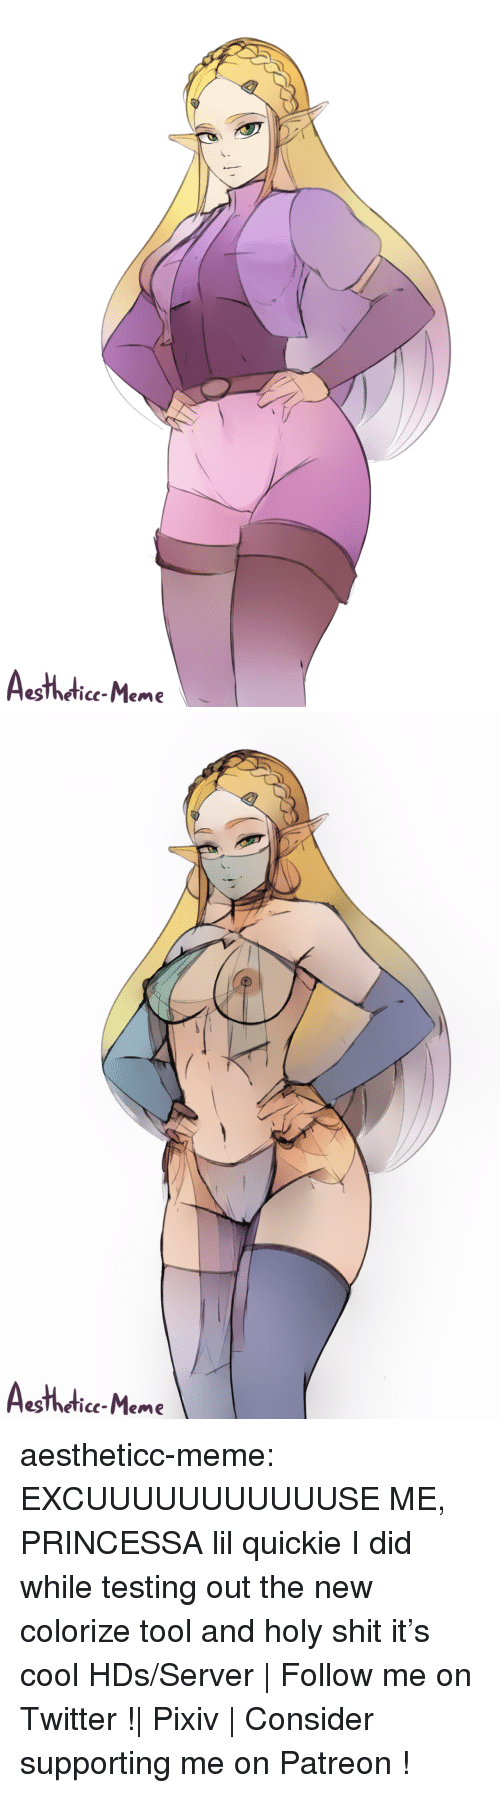 Meme Tumblr: eslheticc-Meme   eslheticc-Meme aestheticc-meme:  EXCUUUUUUUUUUUSE ME, PRINCESSA lil quickie I did while testing out the new colorize tool and holy shit it's cool  HDs/Server | Follow me on Twitter !| Pixiv | Consider supporting me on Patreon !